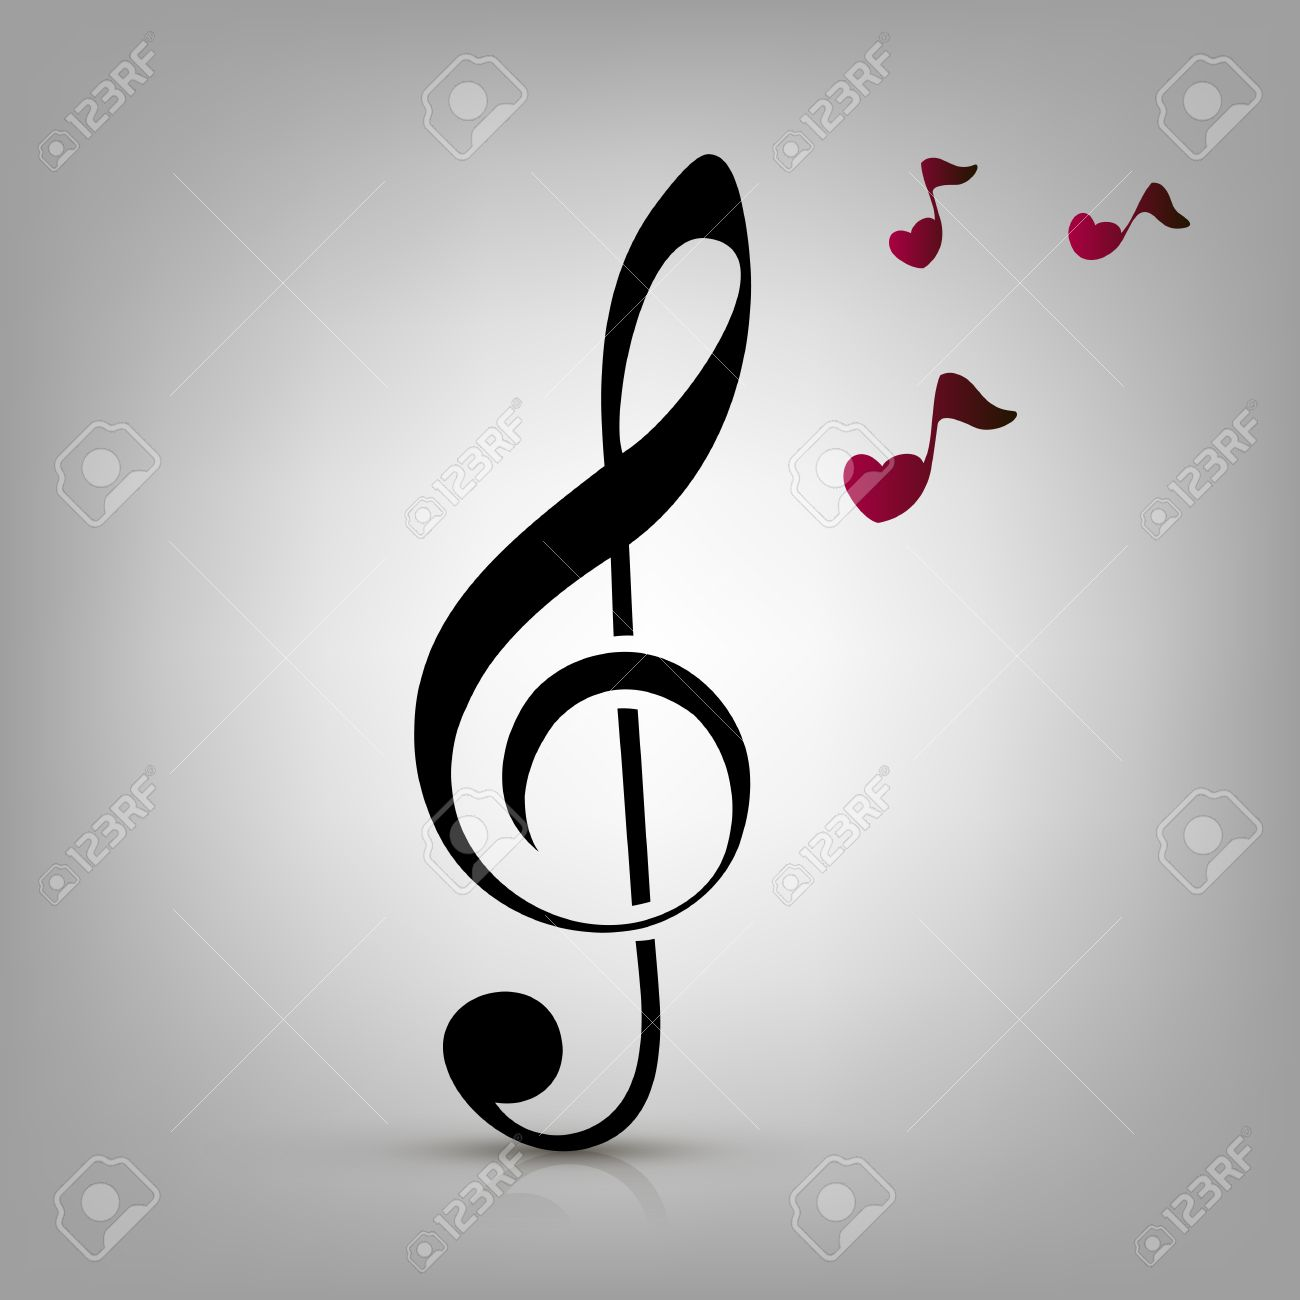 Music Clefs Heart Heart-shaped Music Notes